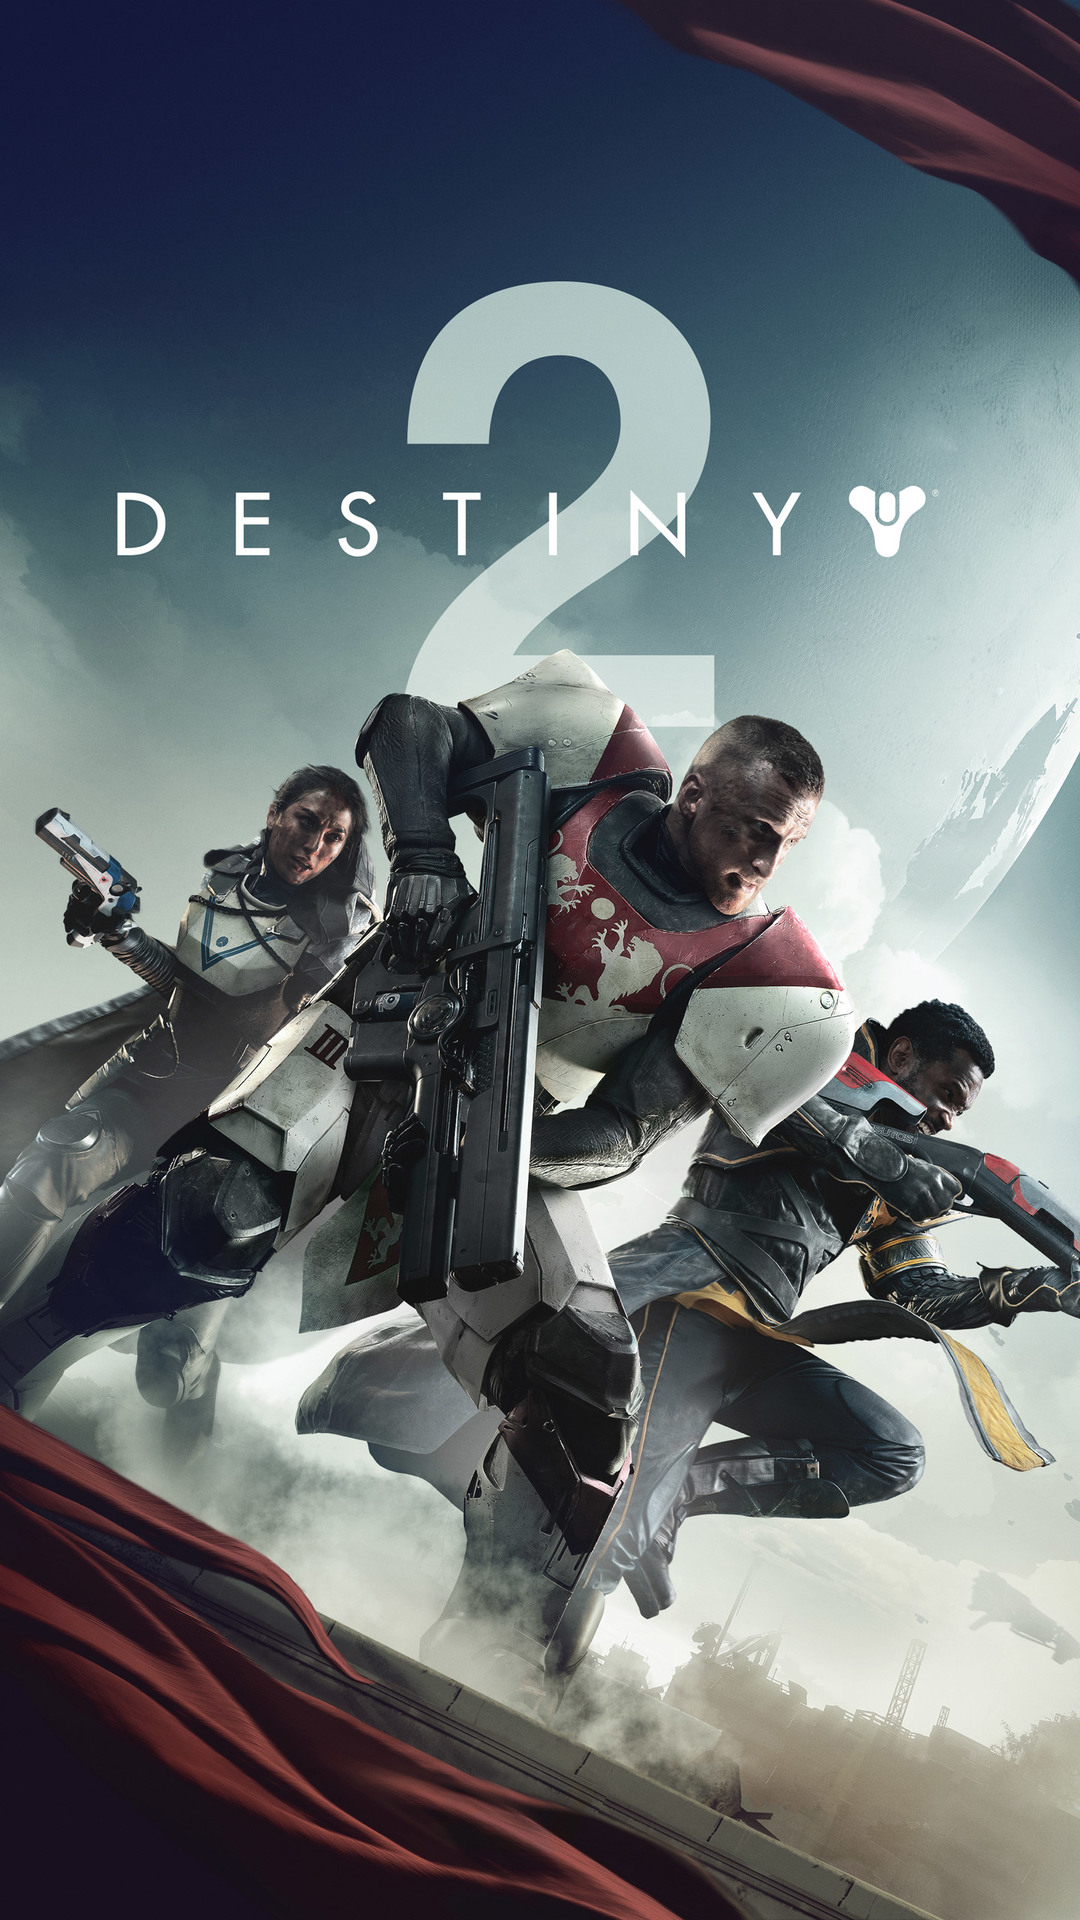 Destiny 2 - Download 4k wallpapers for iPhone and Android